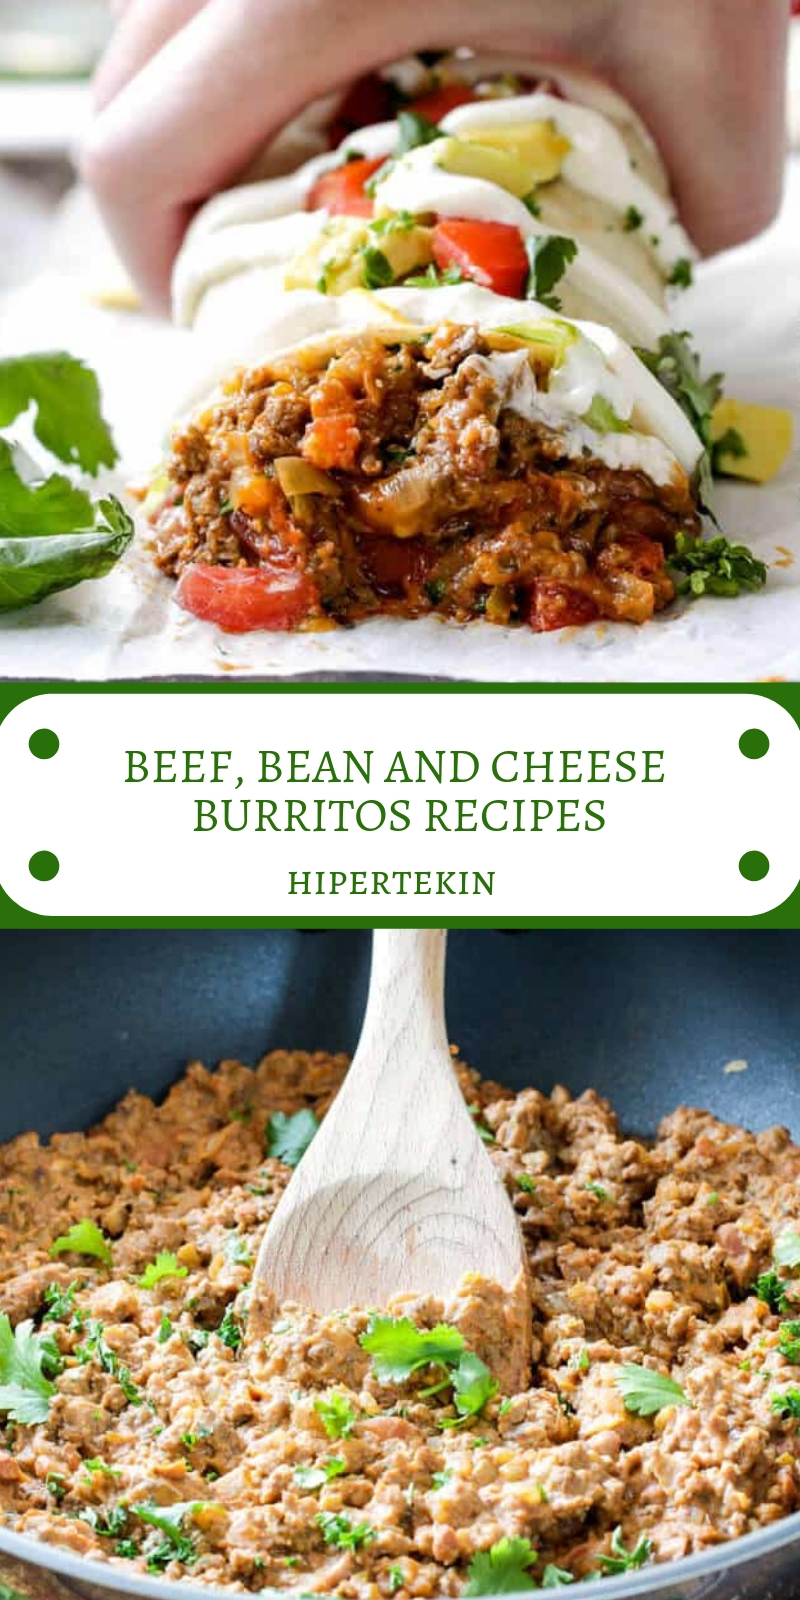 BEEF, BEAN AND CHEESE BURRITOS RECIPES